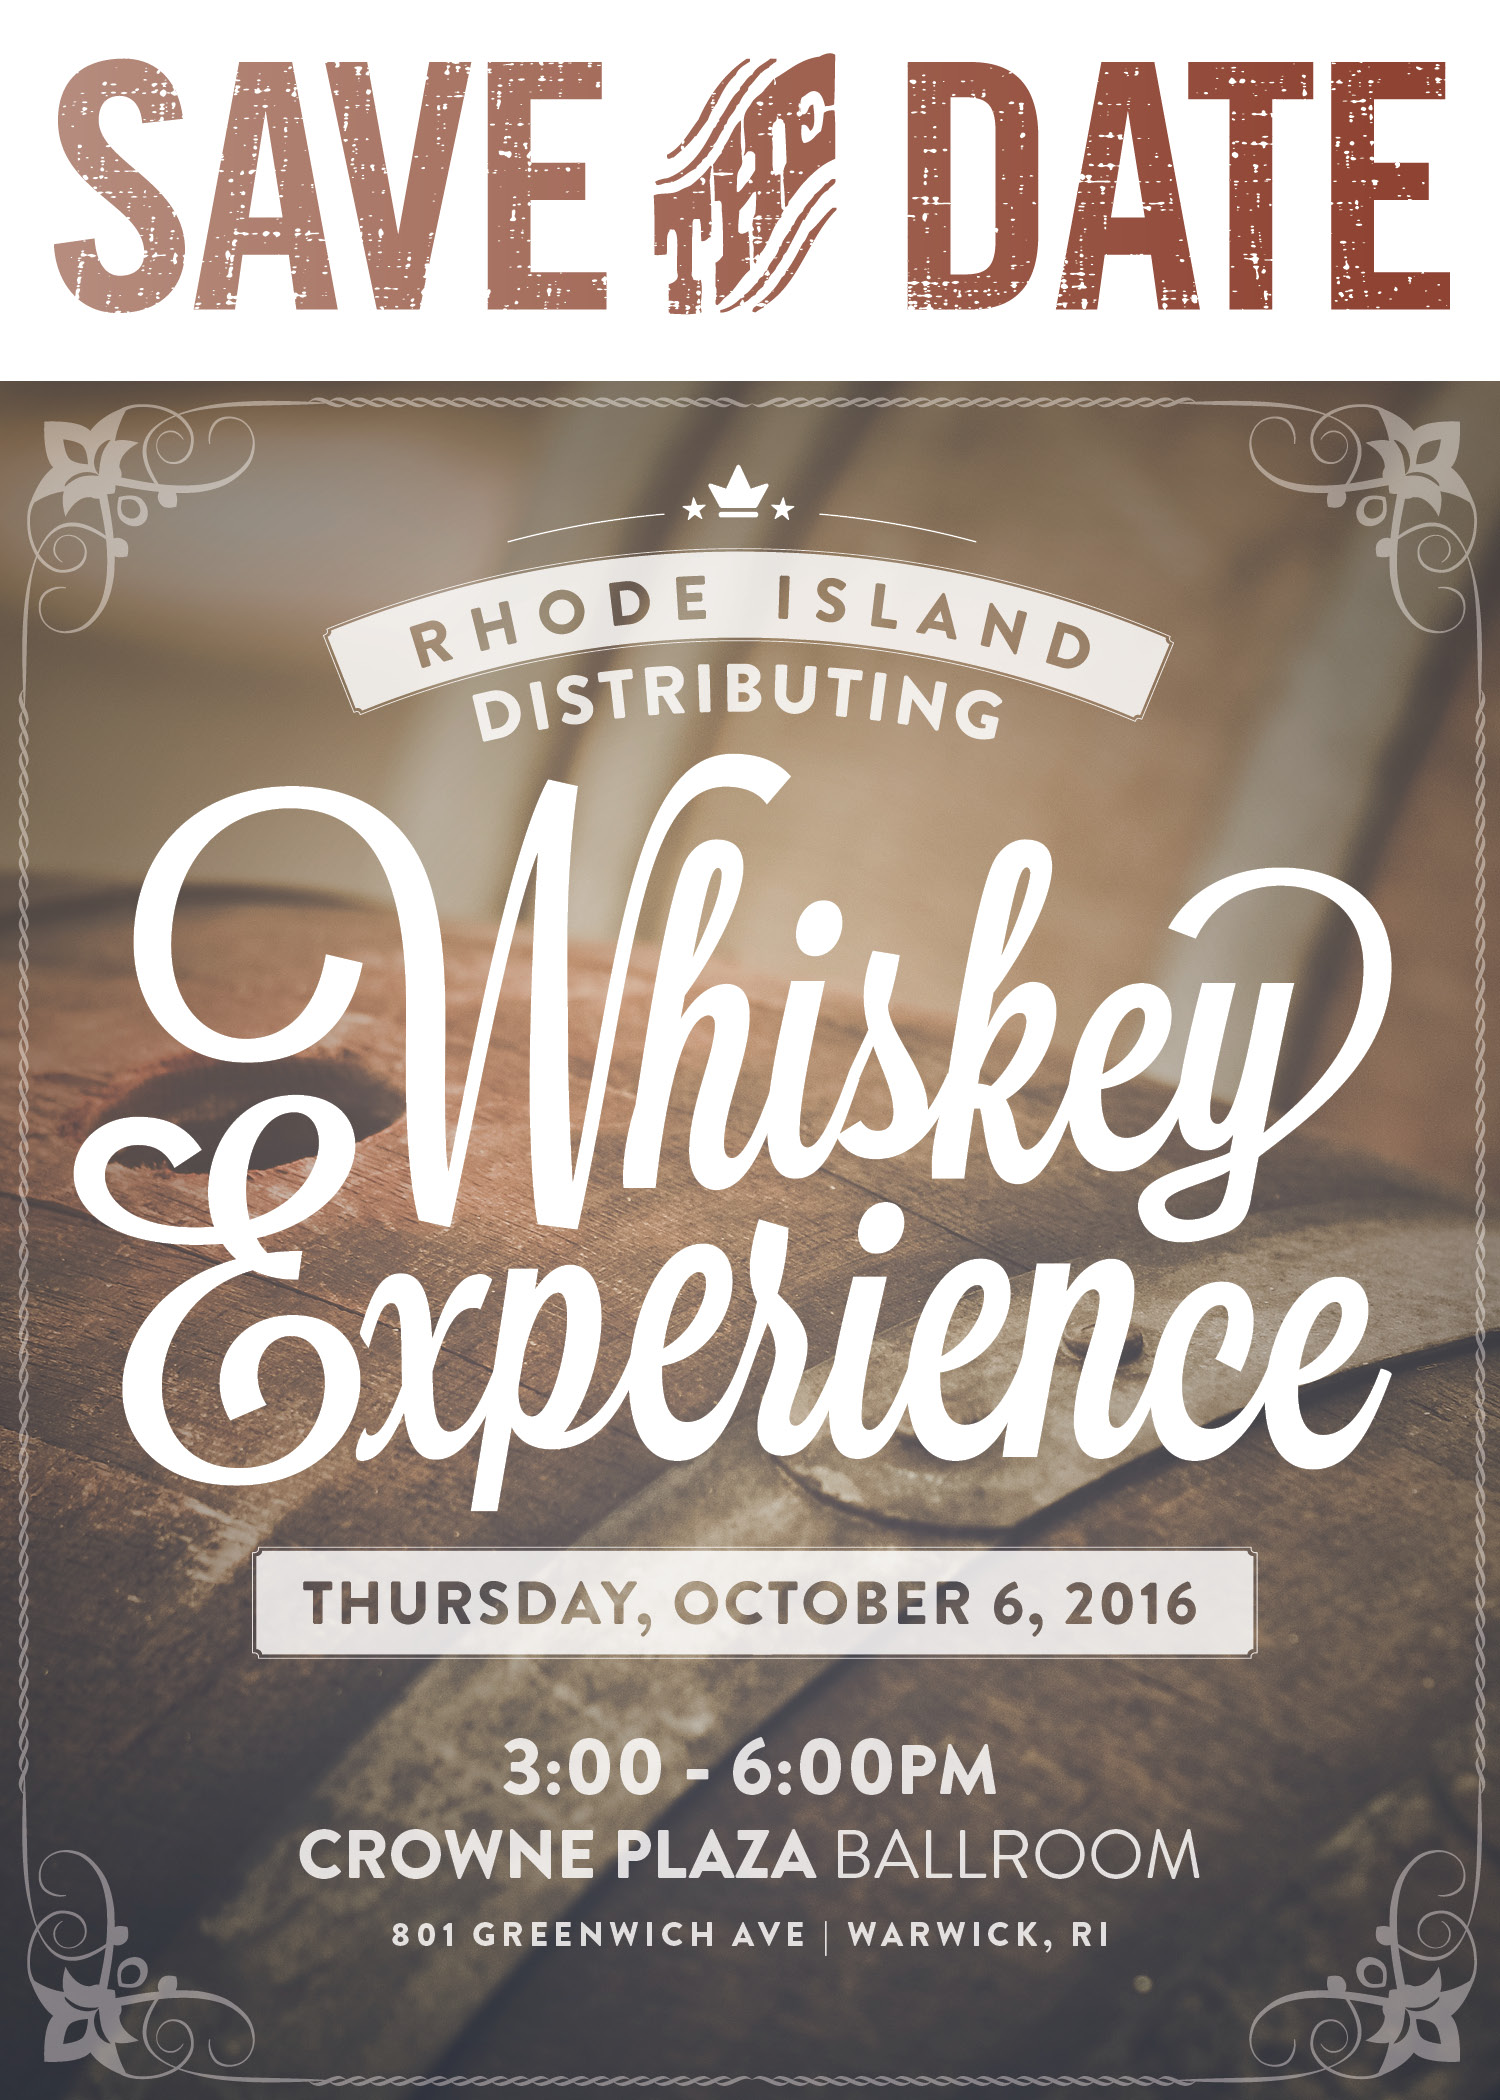 October 6, 2016: Rhode Island Distributing Whiskey Experience